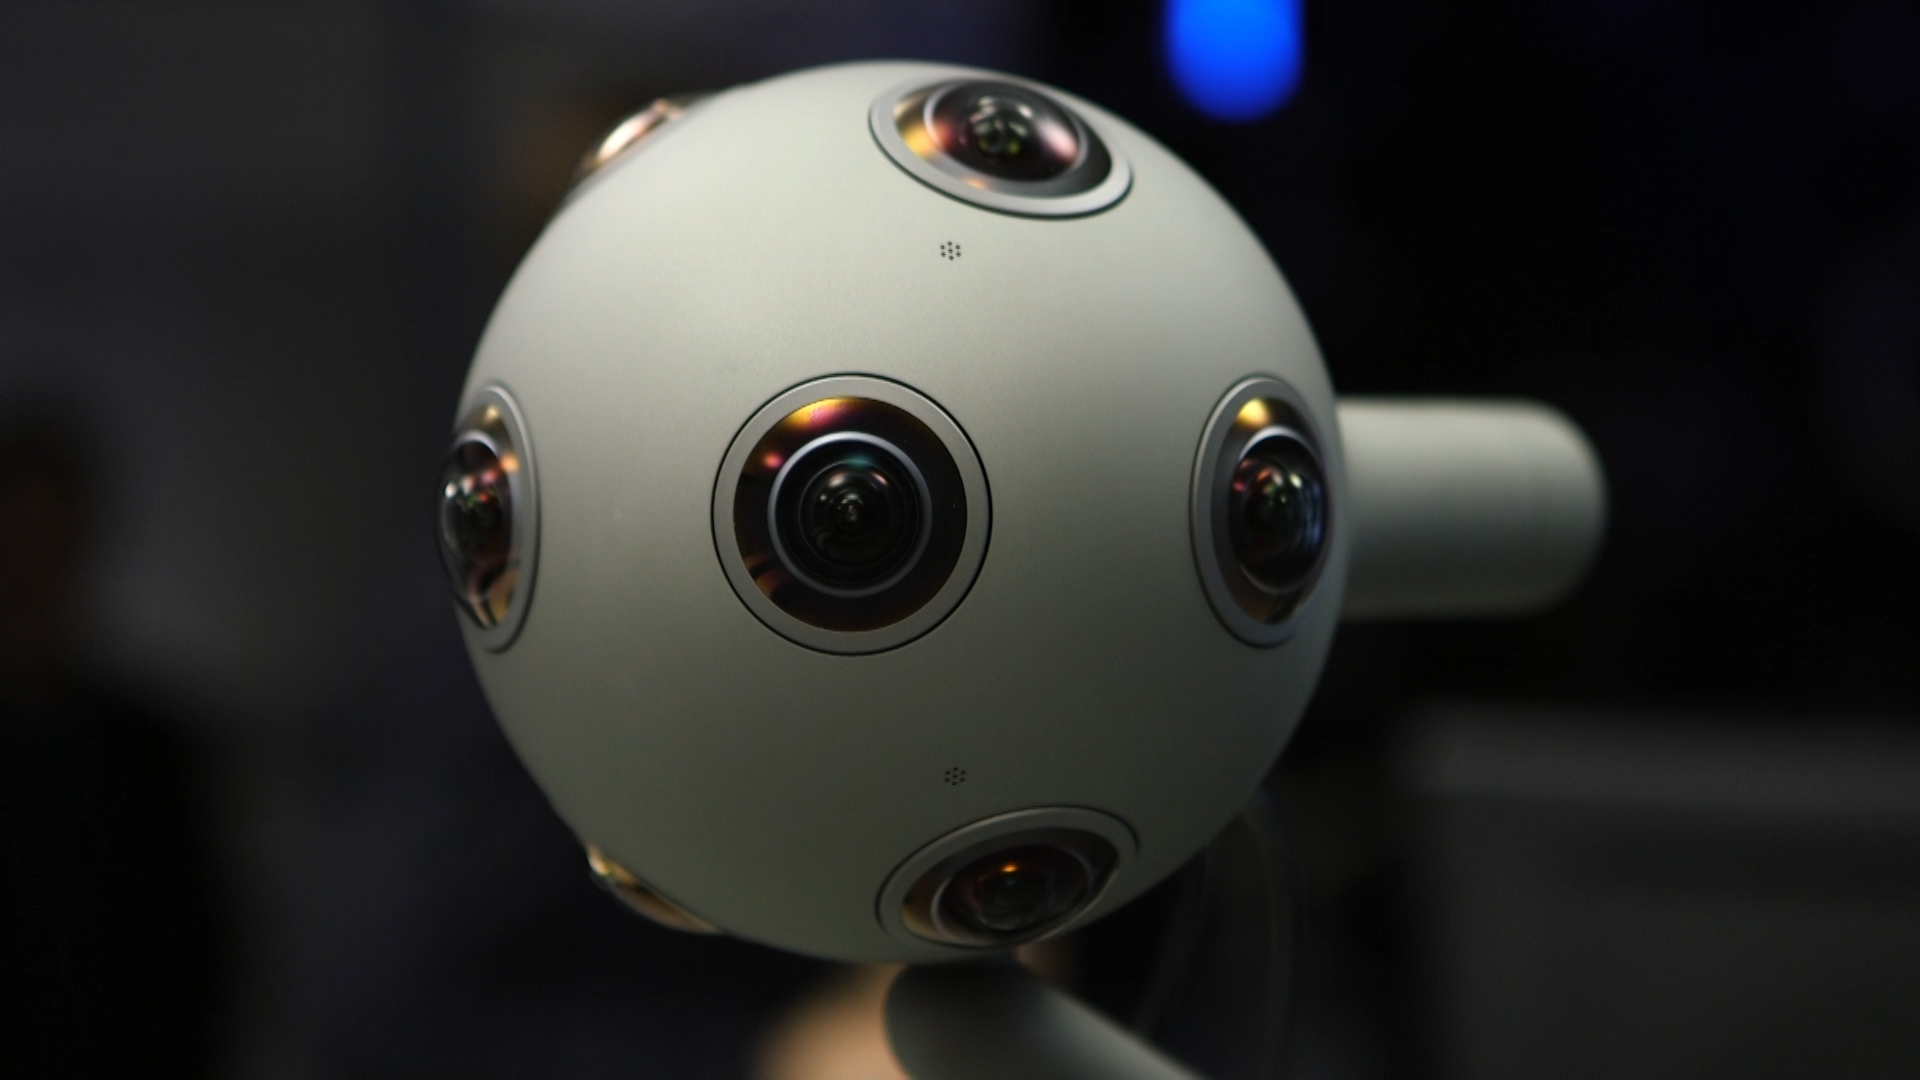 Video: Nokia's $60,000 camera makes video for VR headsets